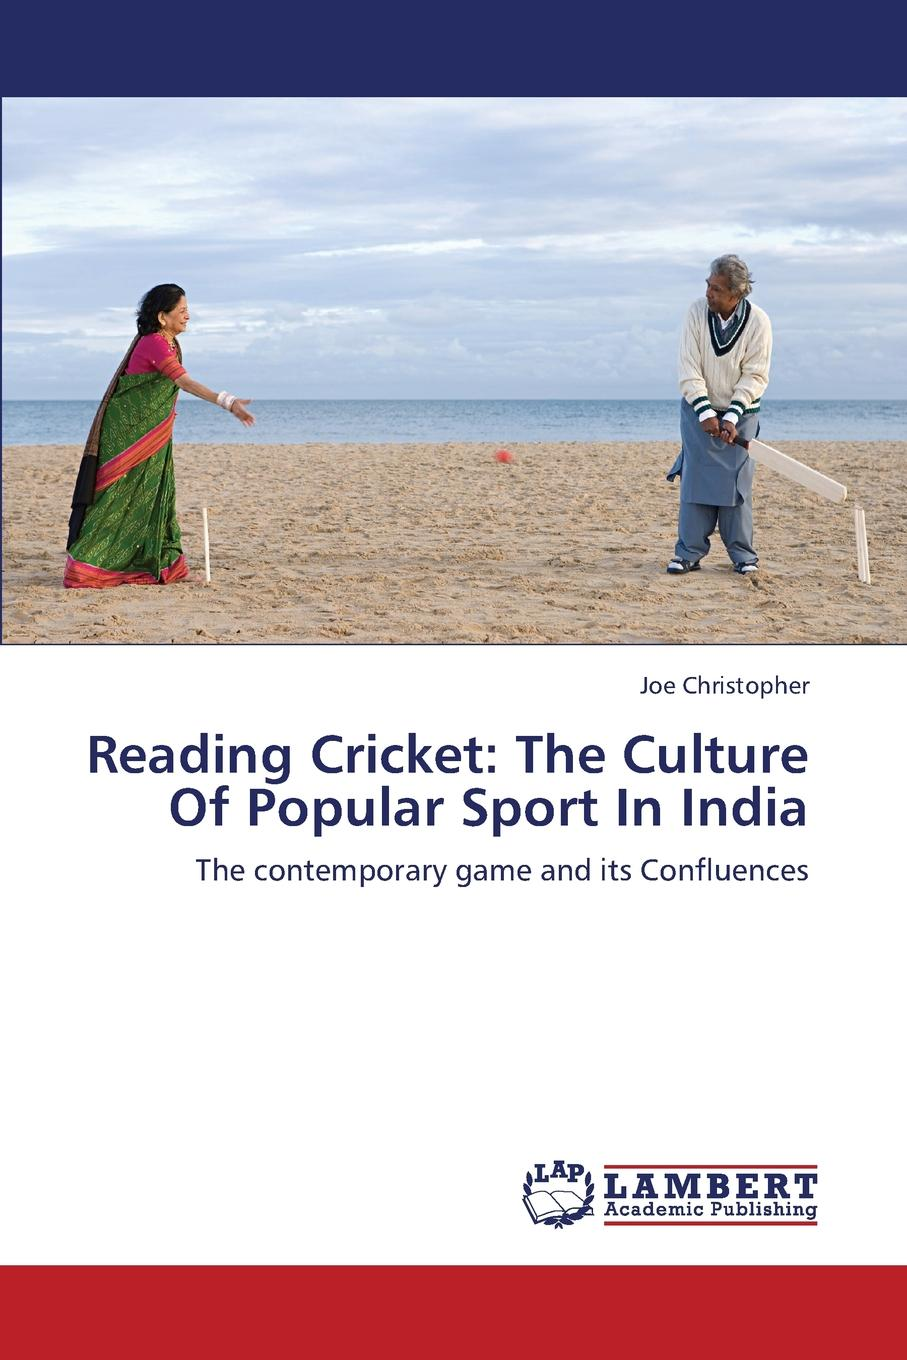 Reading Cricket. The Culture of Popular Sport in India